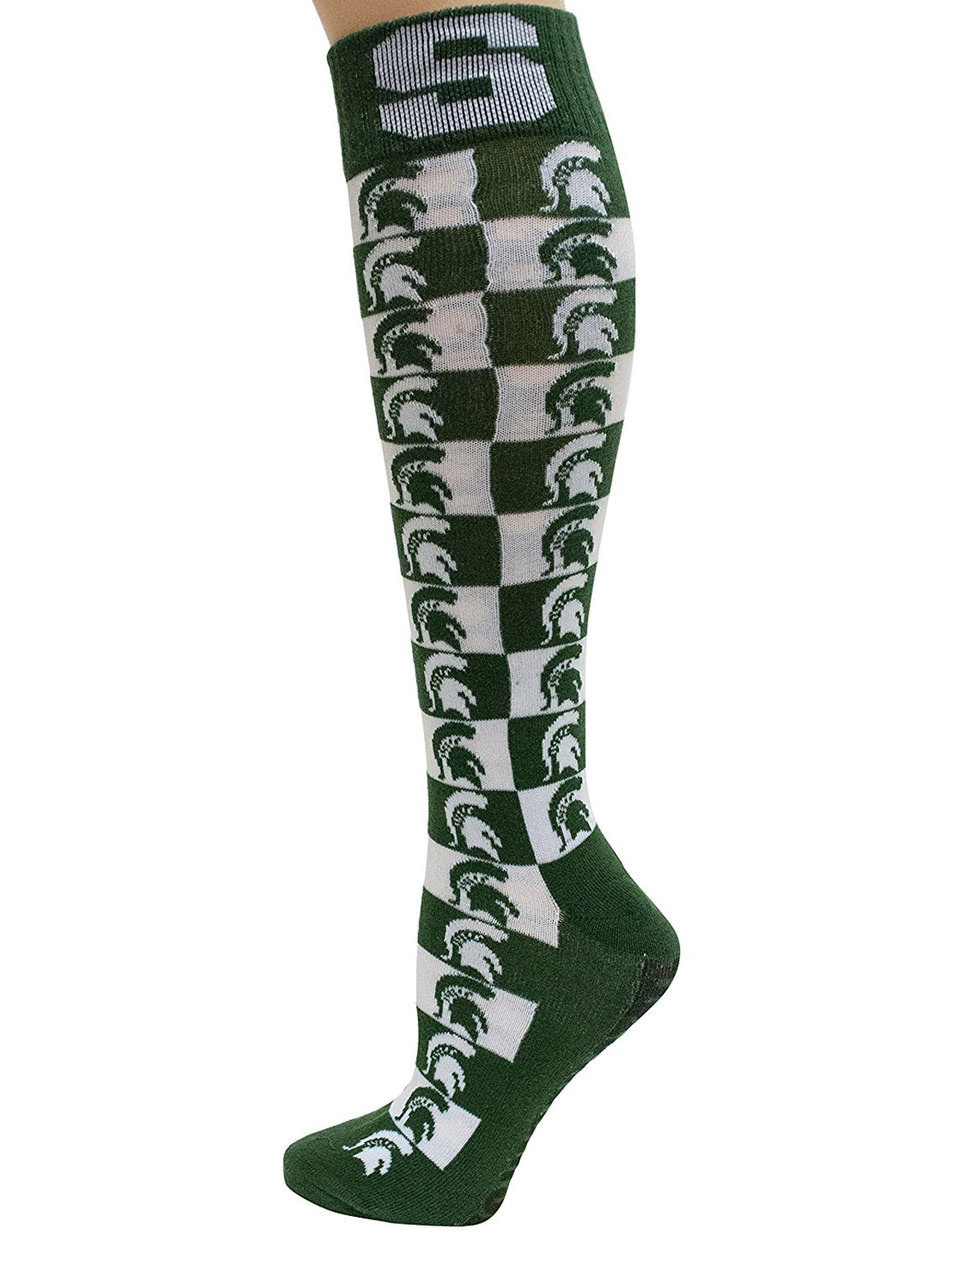 Michigan State Spartans Checkerboard Dress Sock by Donegal Bay